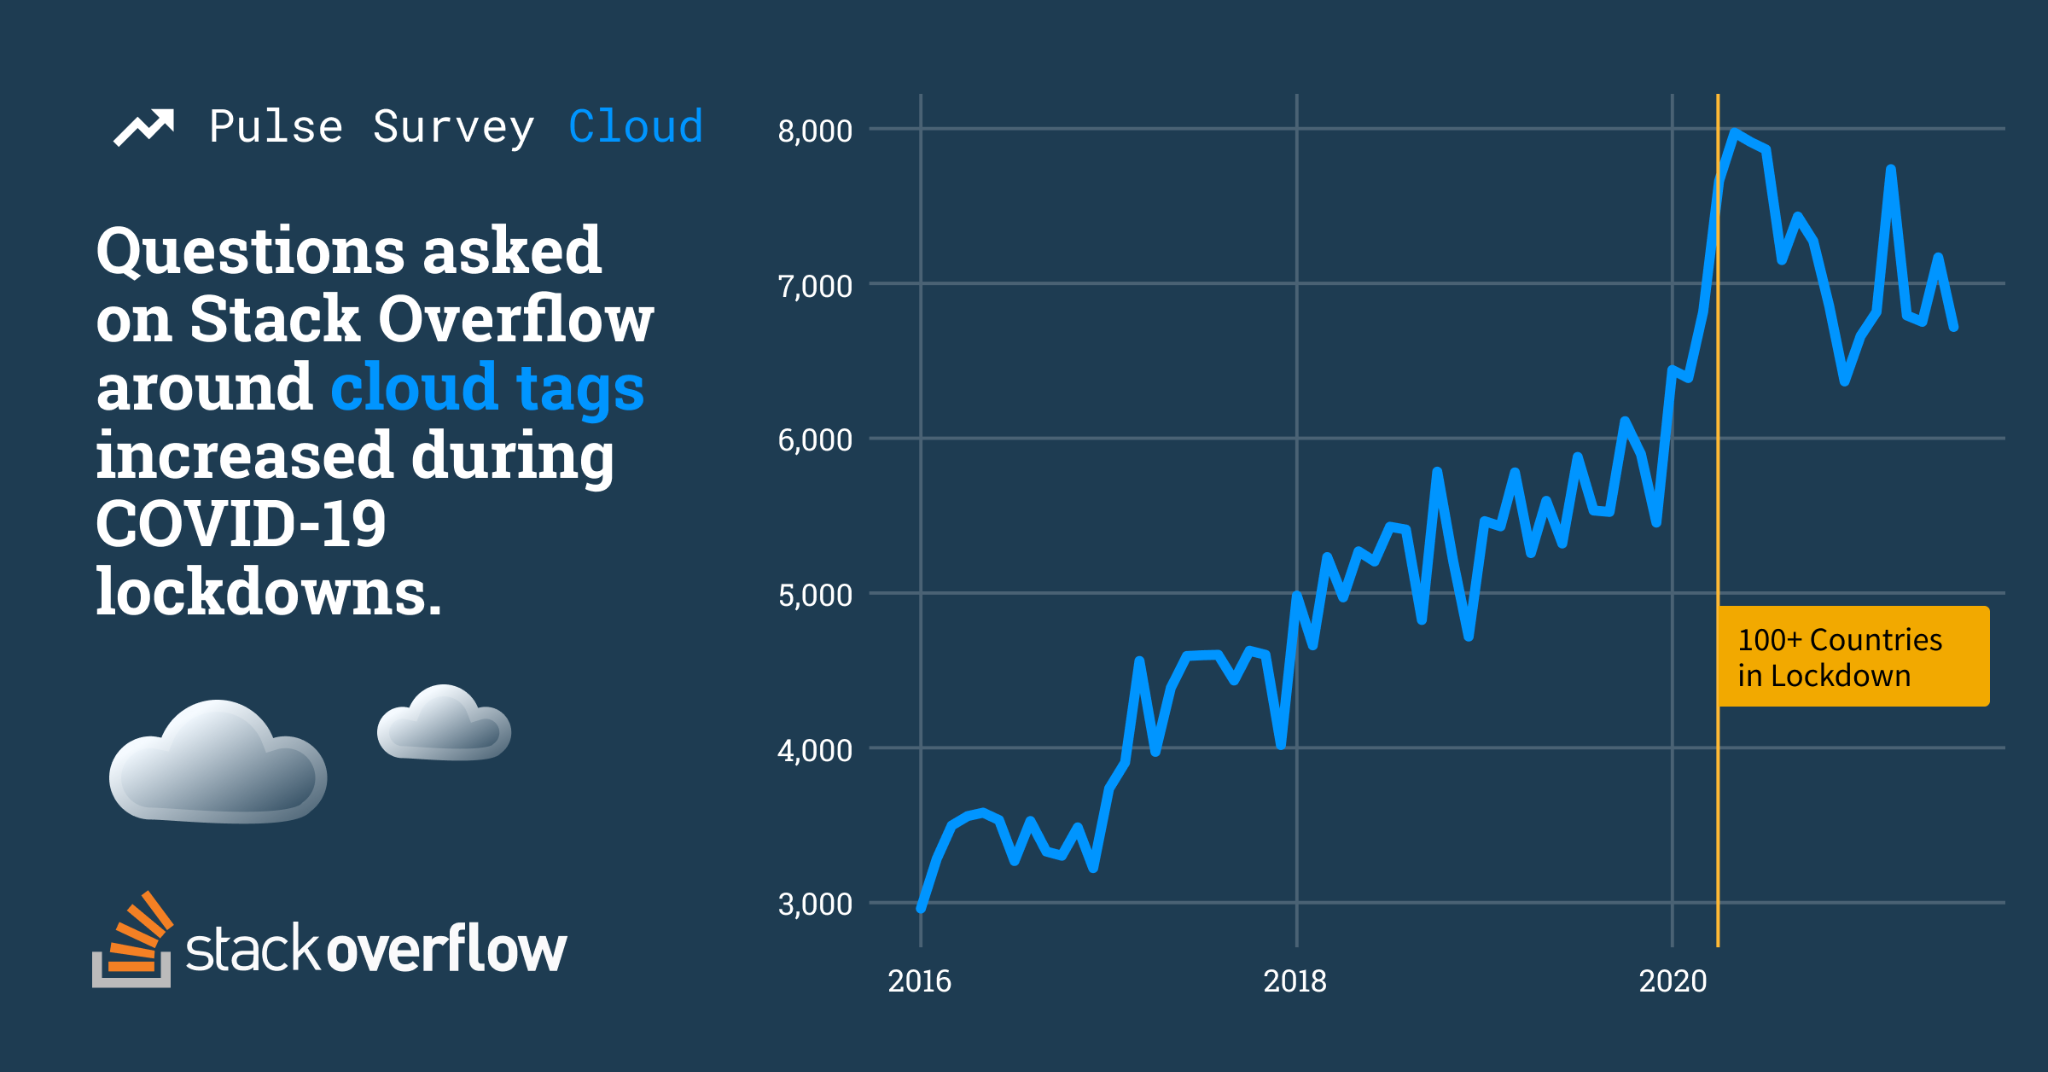 Line chart showing growth of cloud-related questions asked on Stack Overflow from 2016 to September 2021. In March 2020, we saw a dramatic spike reaching close to 8,000 questions asked. This is the time that 100+ countries entered lockdown.